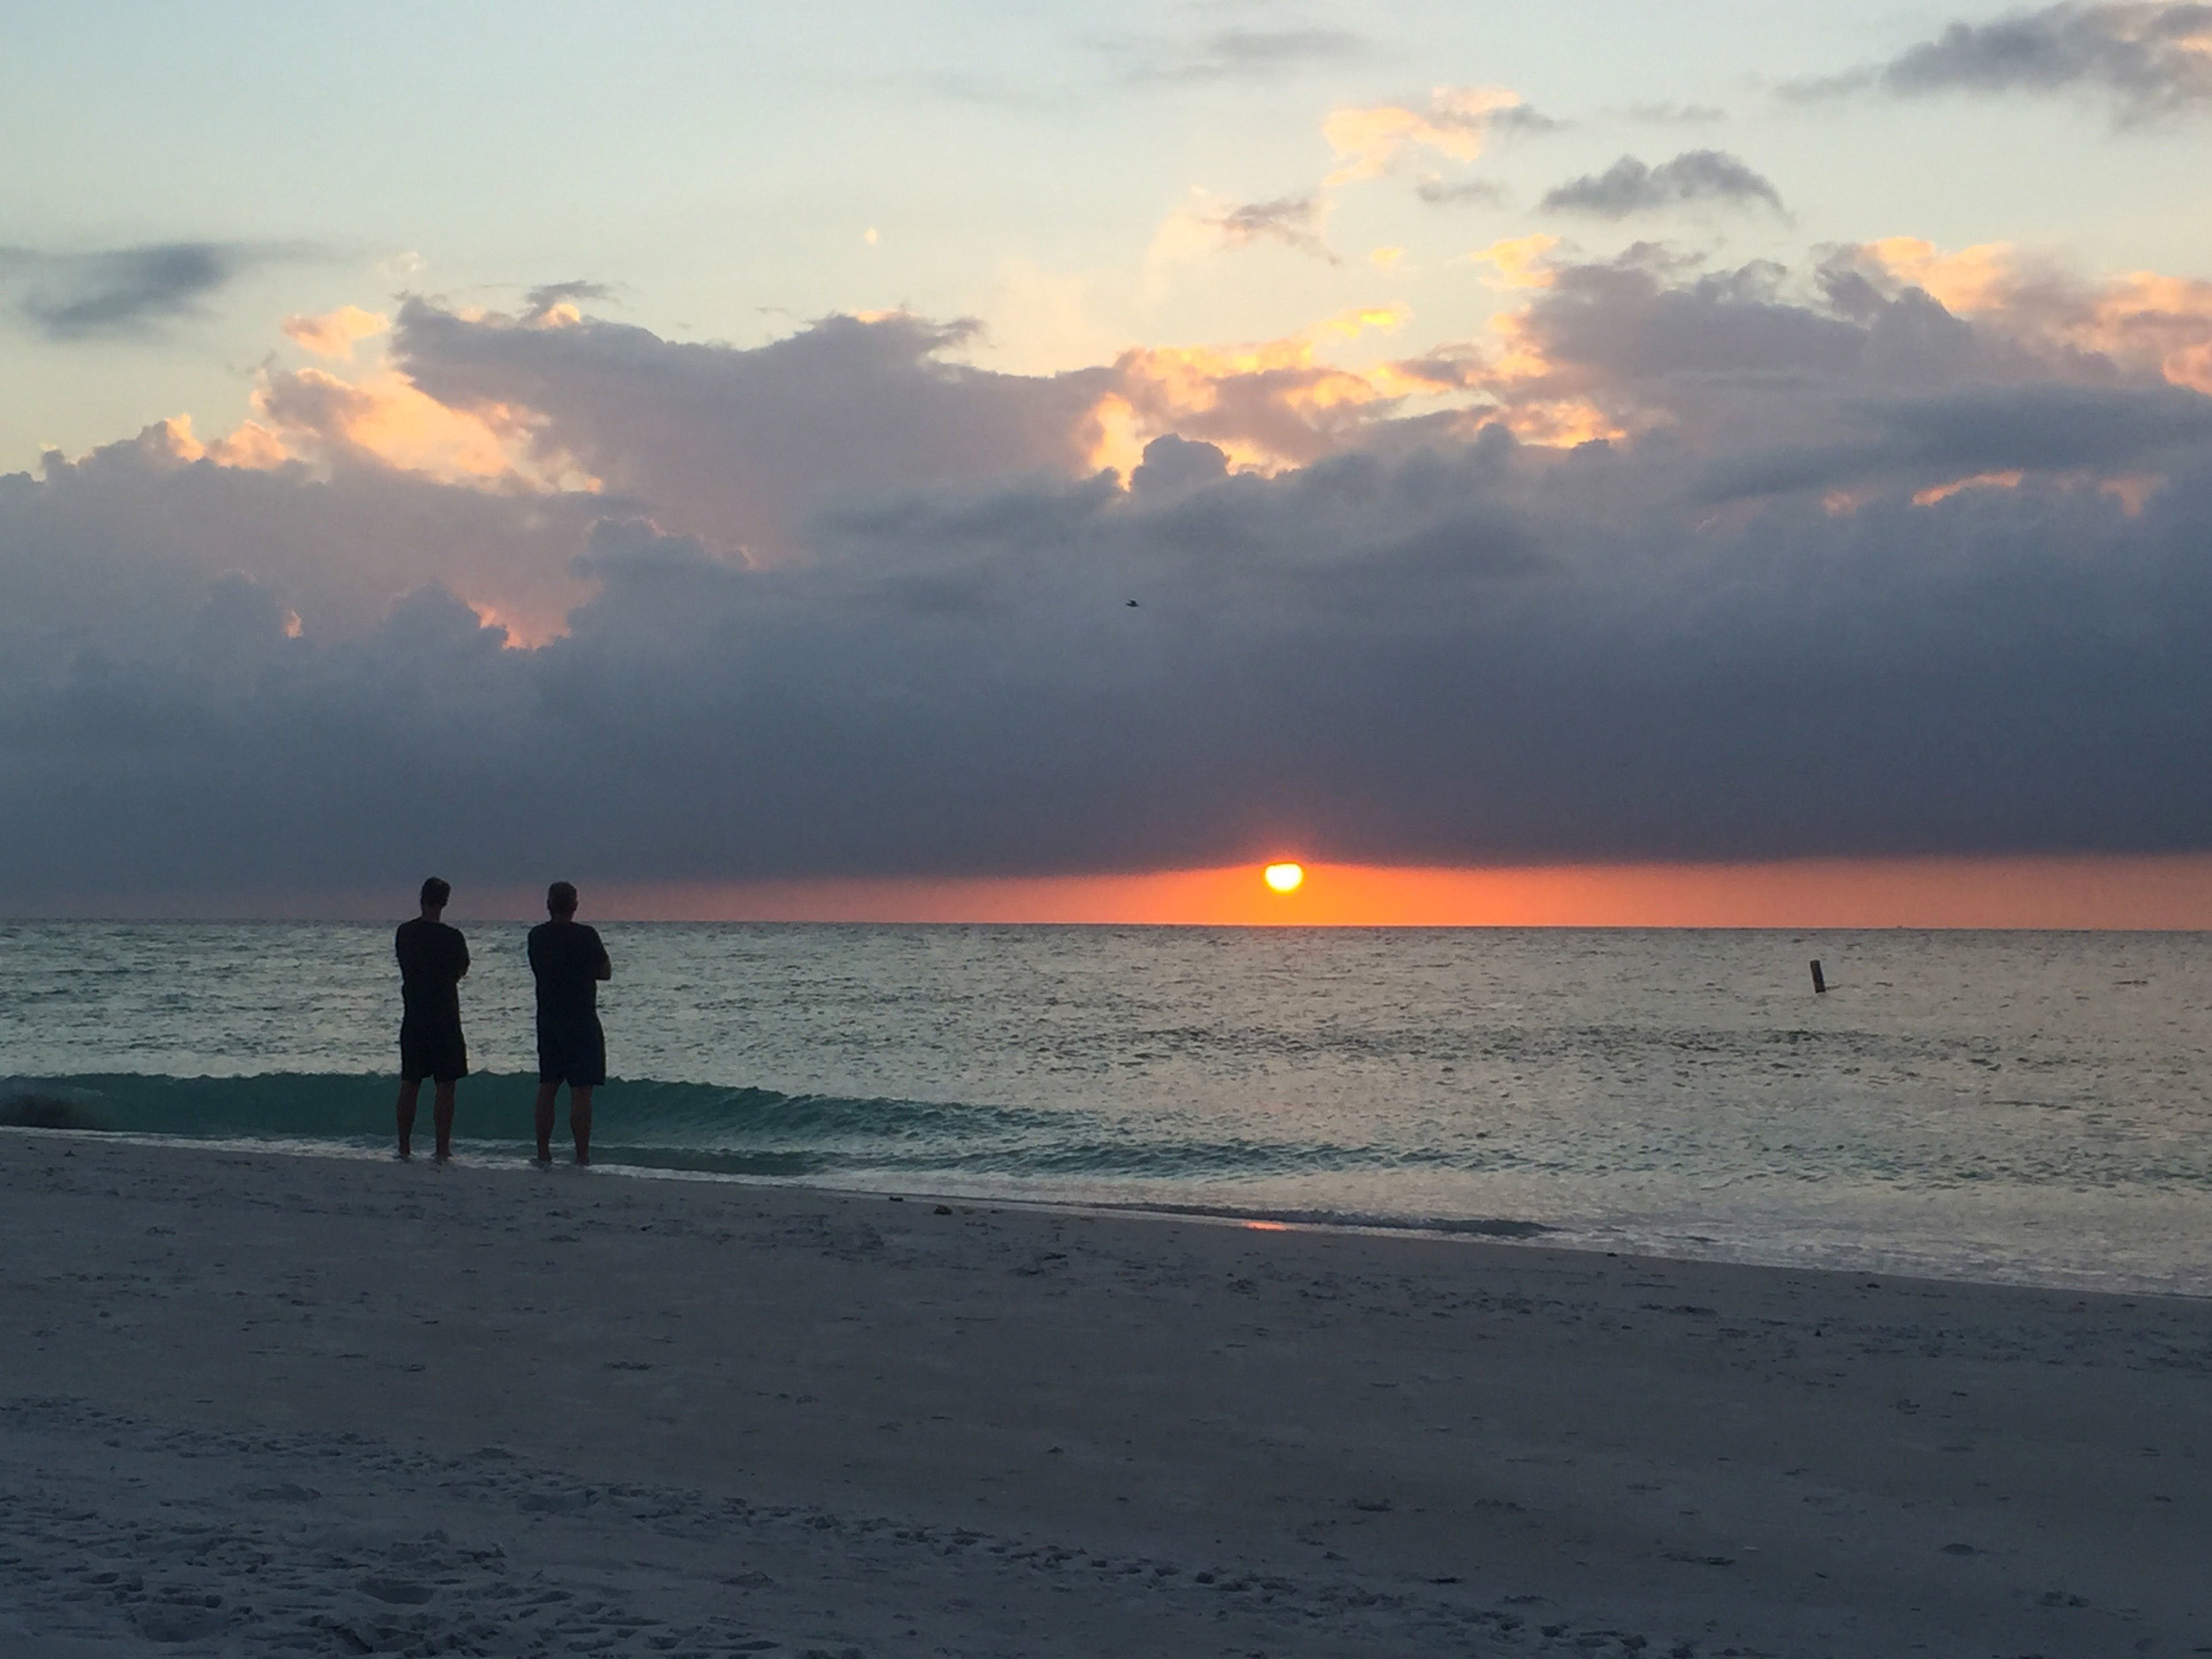 Each night people gather on the beach to watch the sunset. And we were always amongst them. I like this tradition. It's amazing to think we all are looking at the same sun at the end of each day, no matter where we are isn't it?